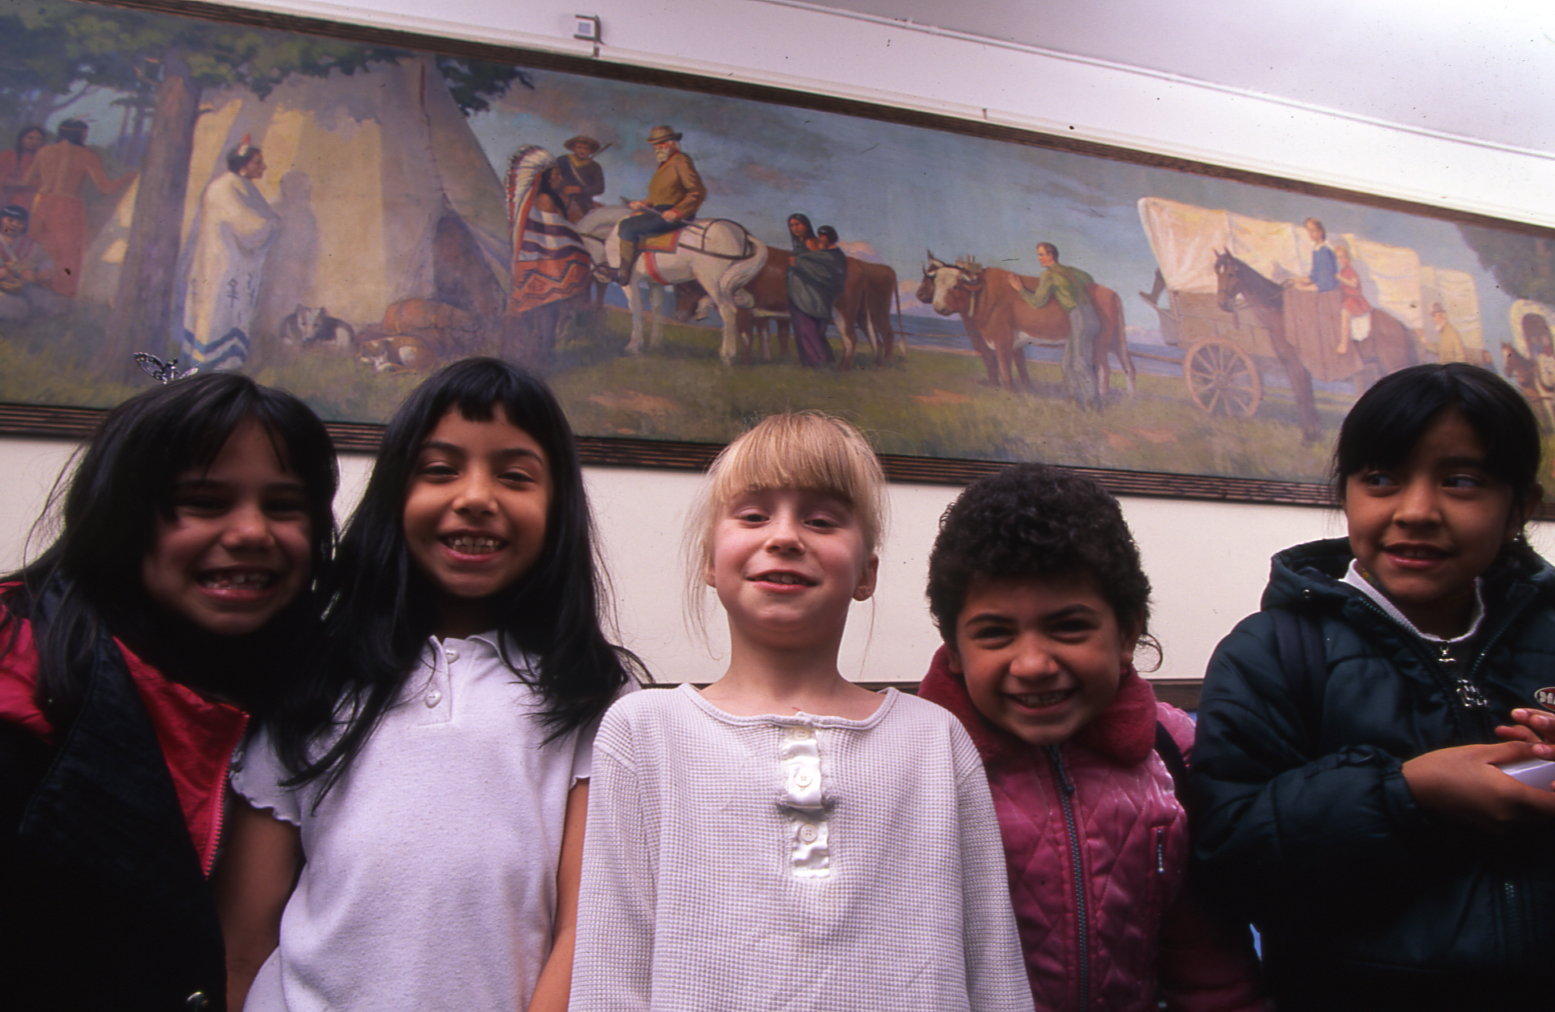 Pioneers and Indians , Datus E. Myers, 1920, oil on canvas, at Linné Elementary School with students.